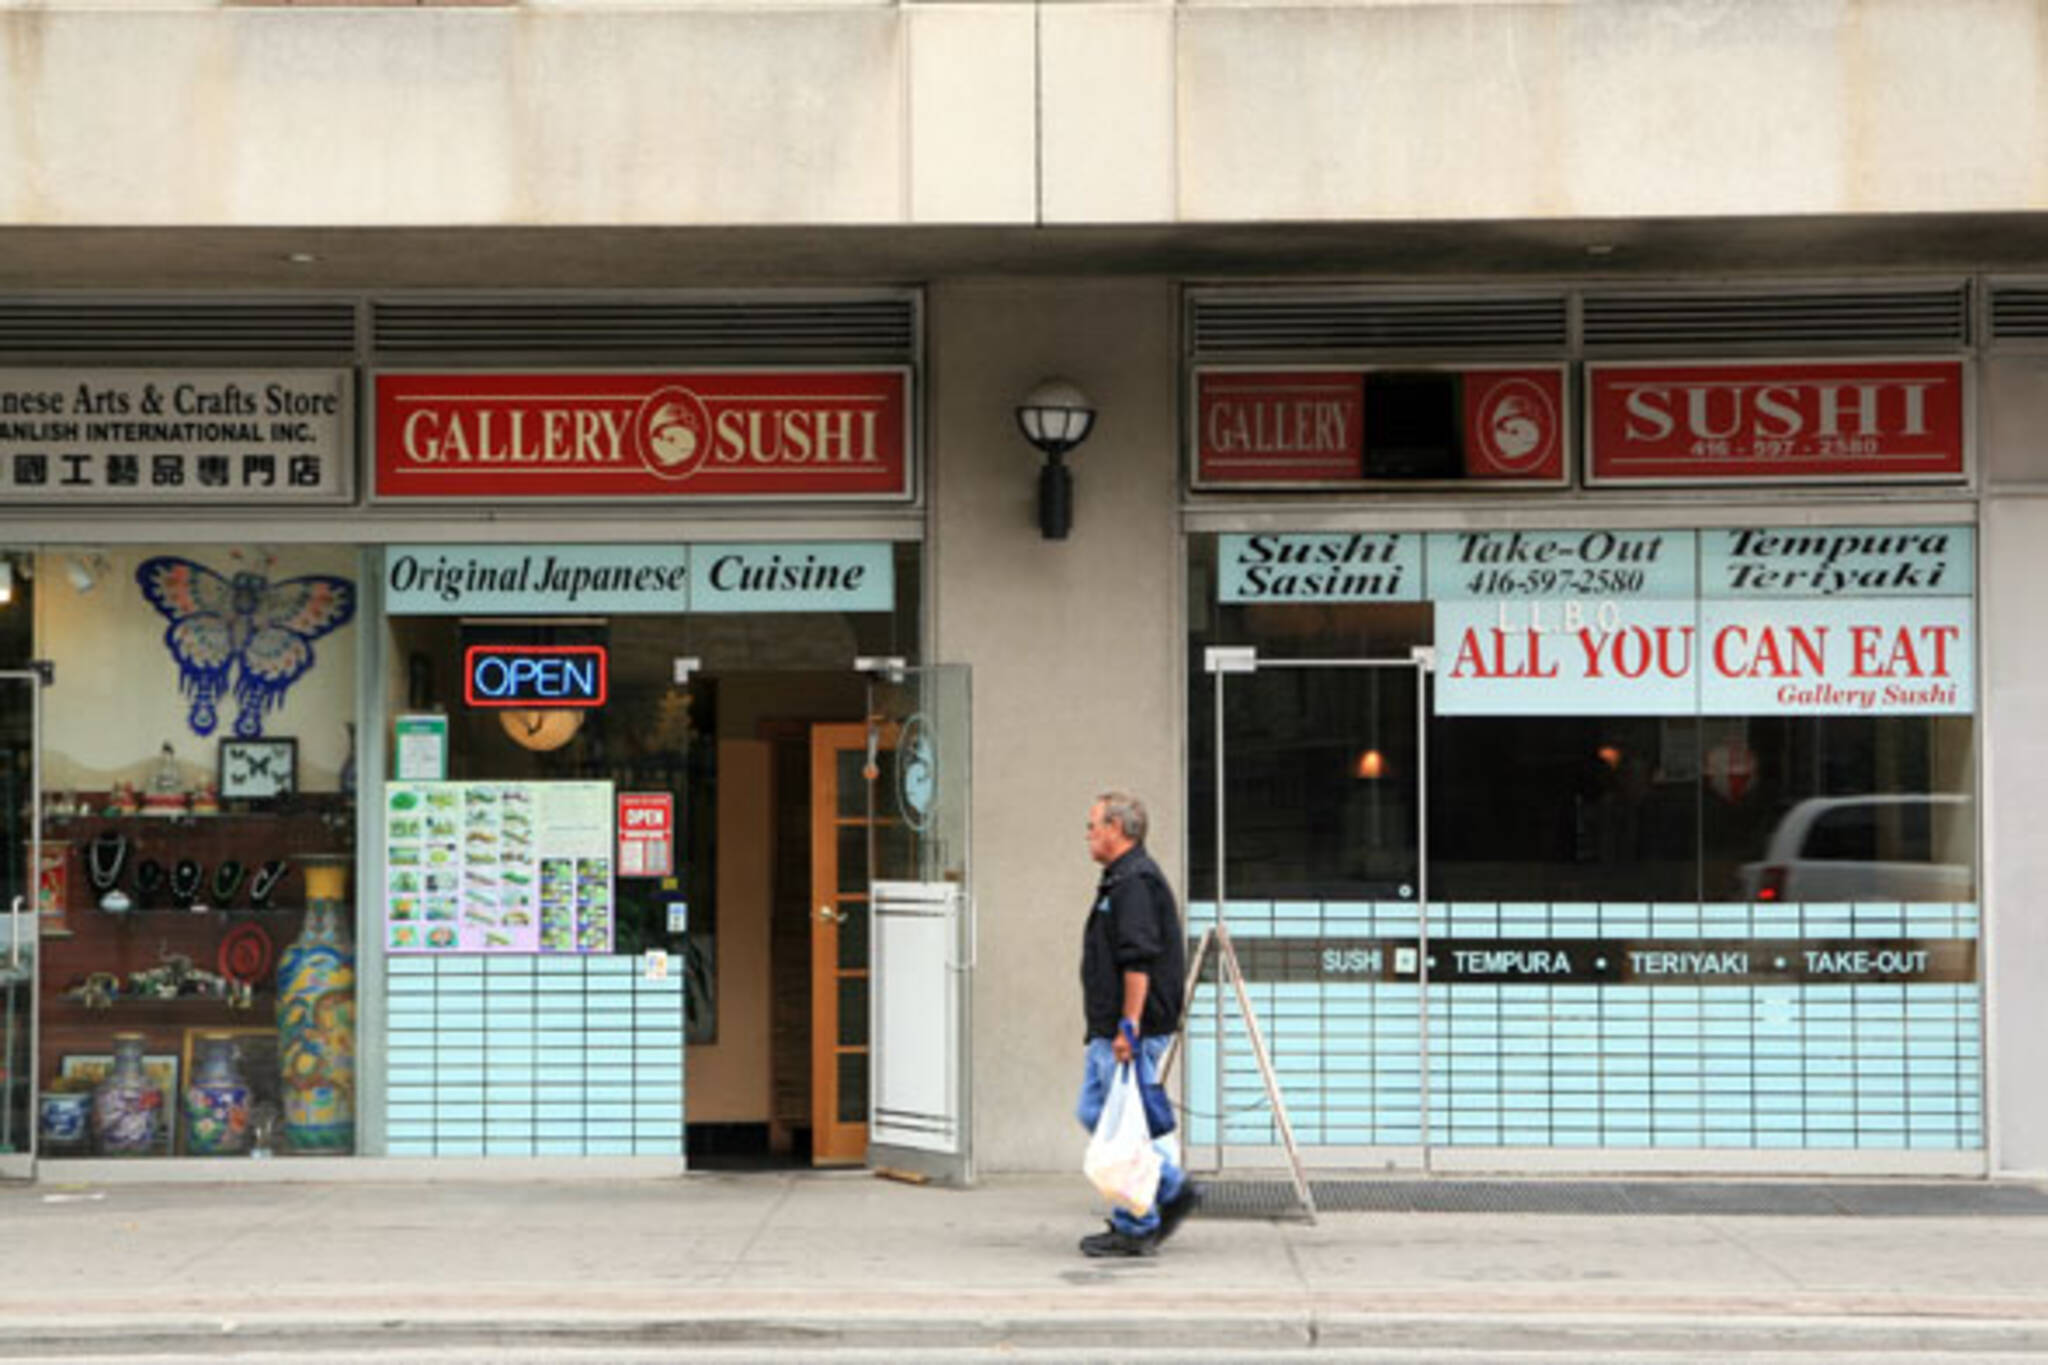 Gallery Sushi